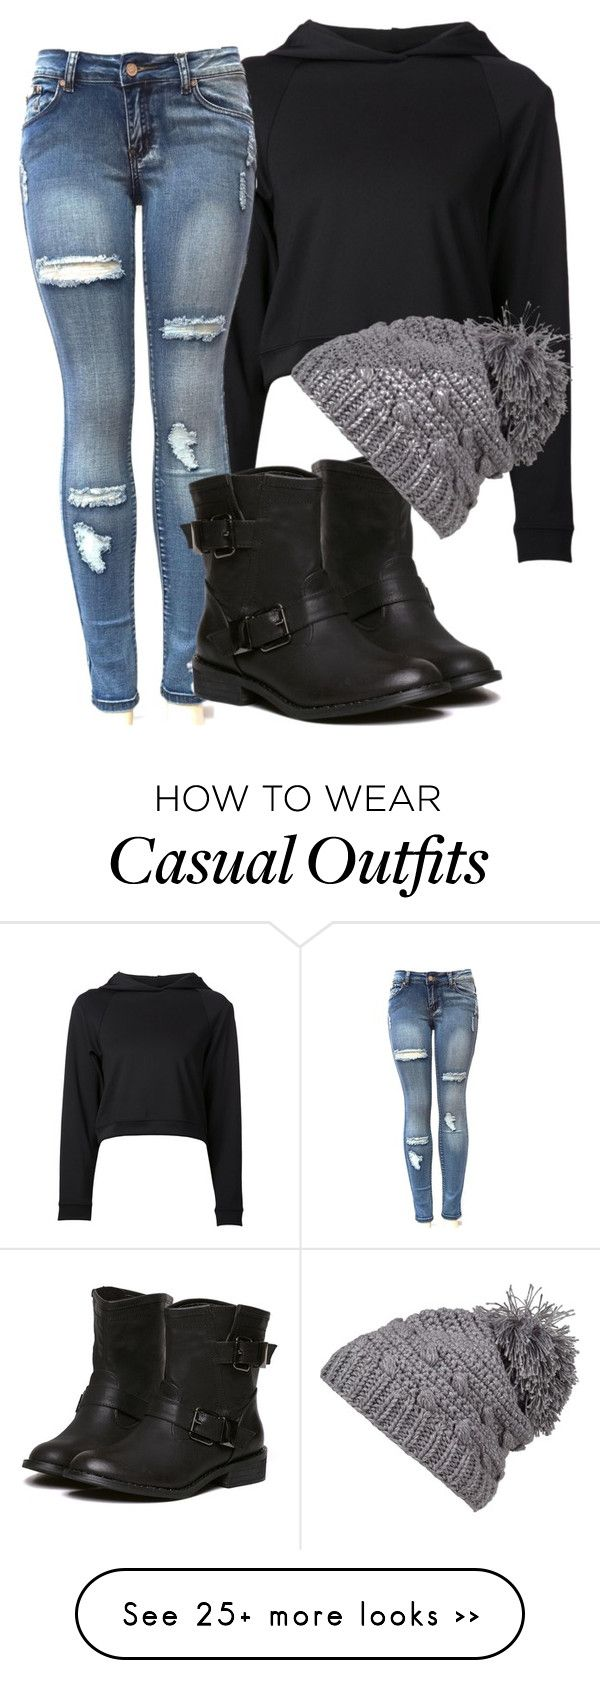 """""""Just a casual day"""" by taylor-swimming-queen on Polyvore featuring Getting Back To Square One, prAna and taylorsfashion"""